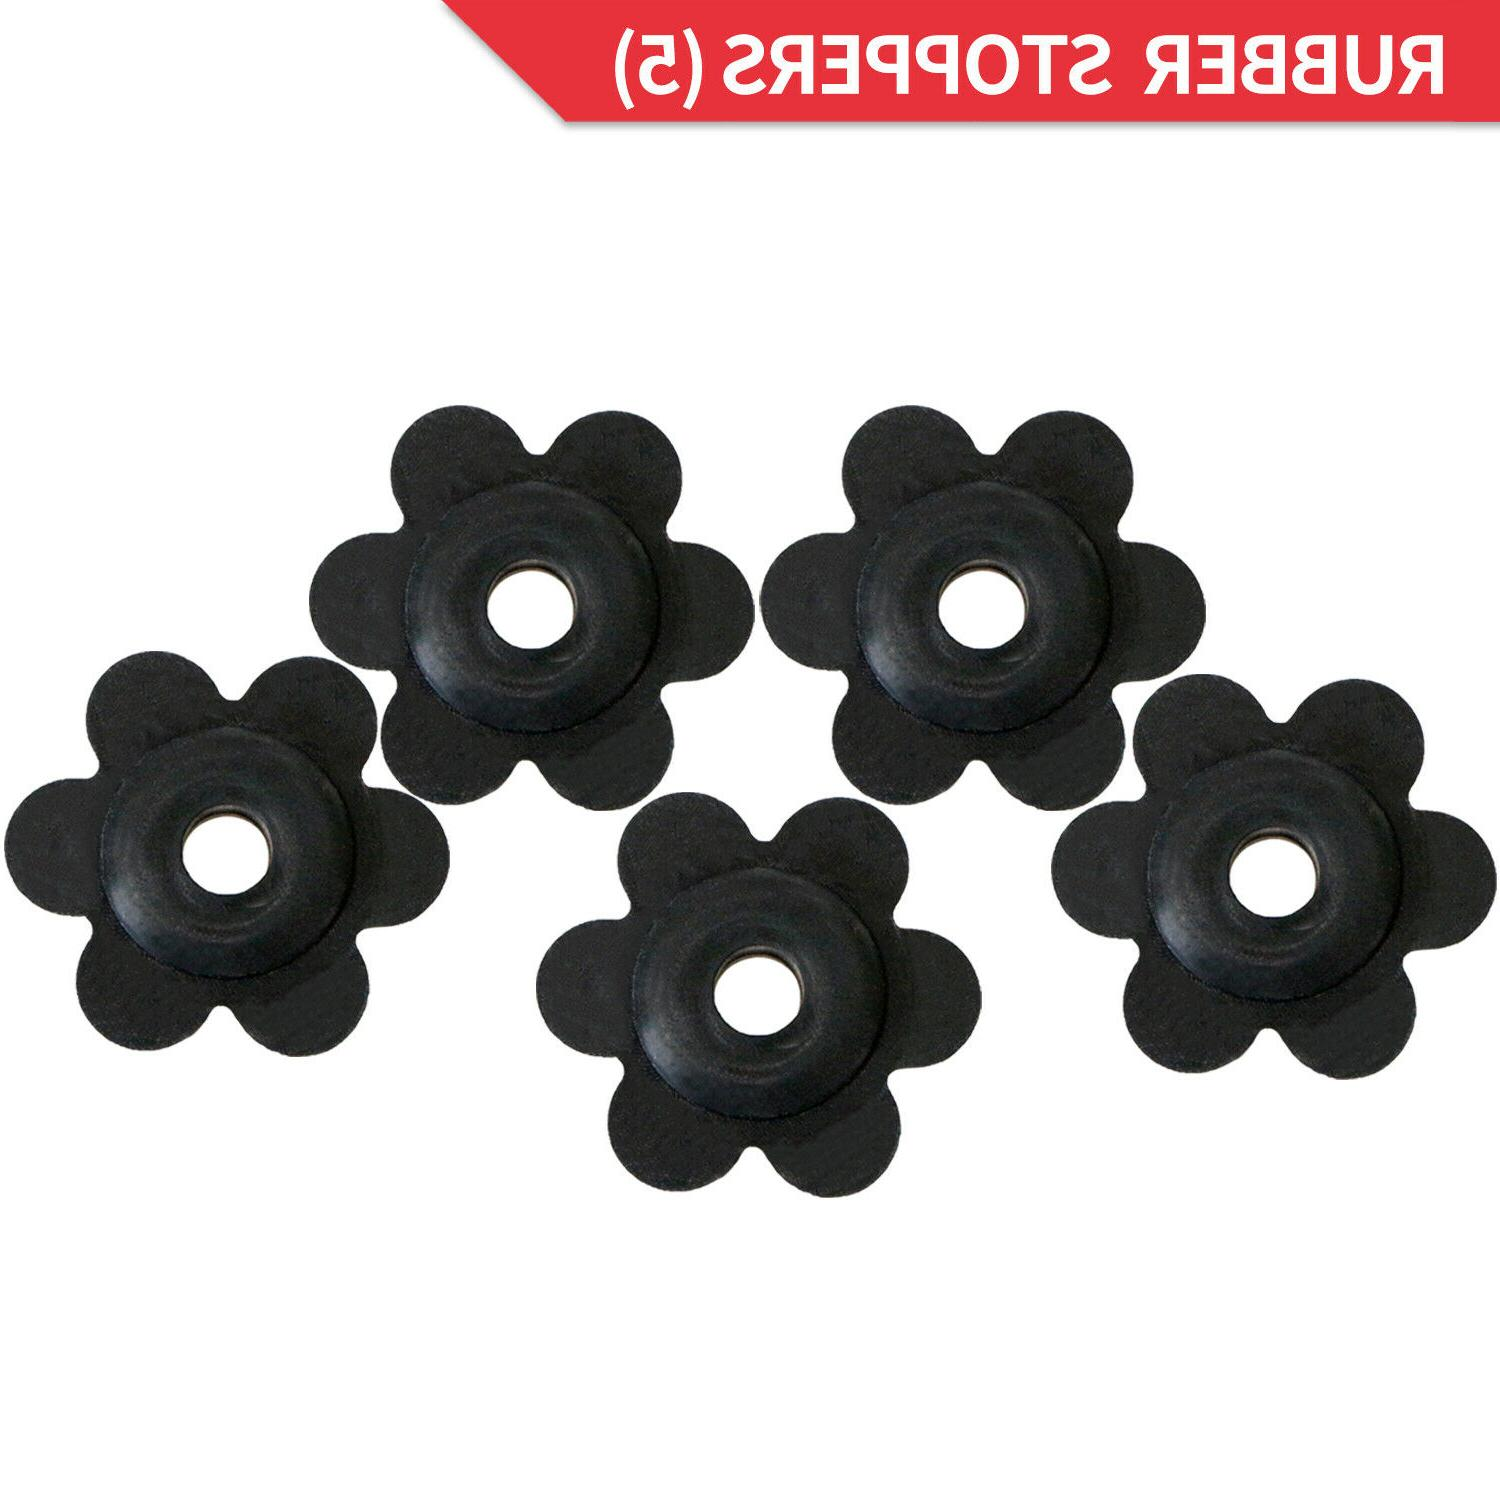 Anley 10 Pack Garden Stoppers and